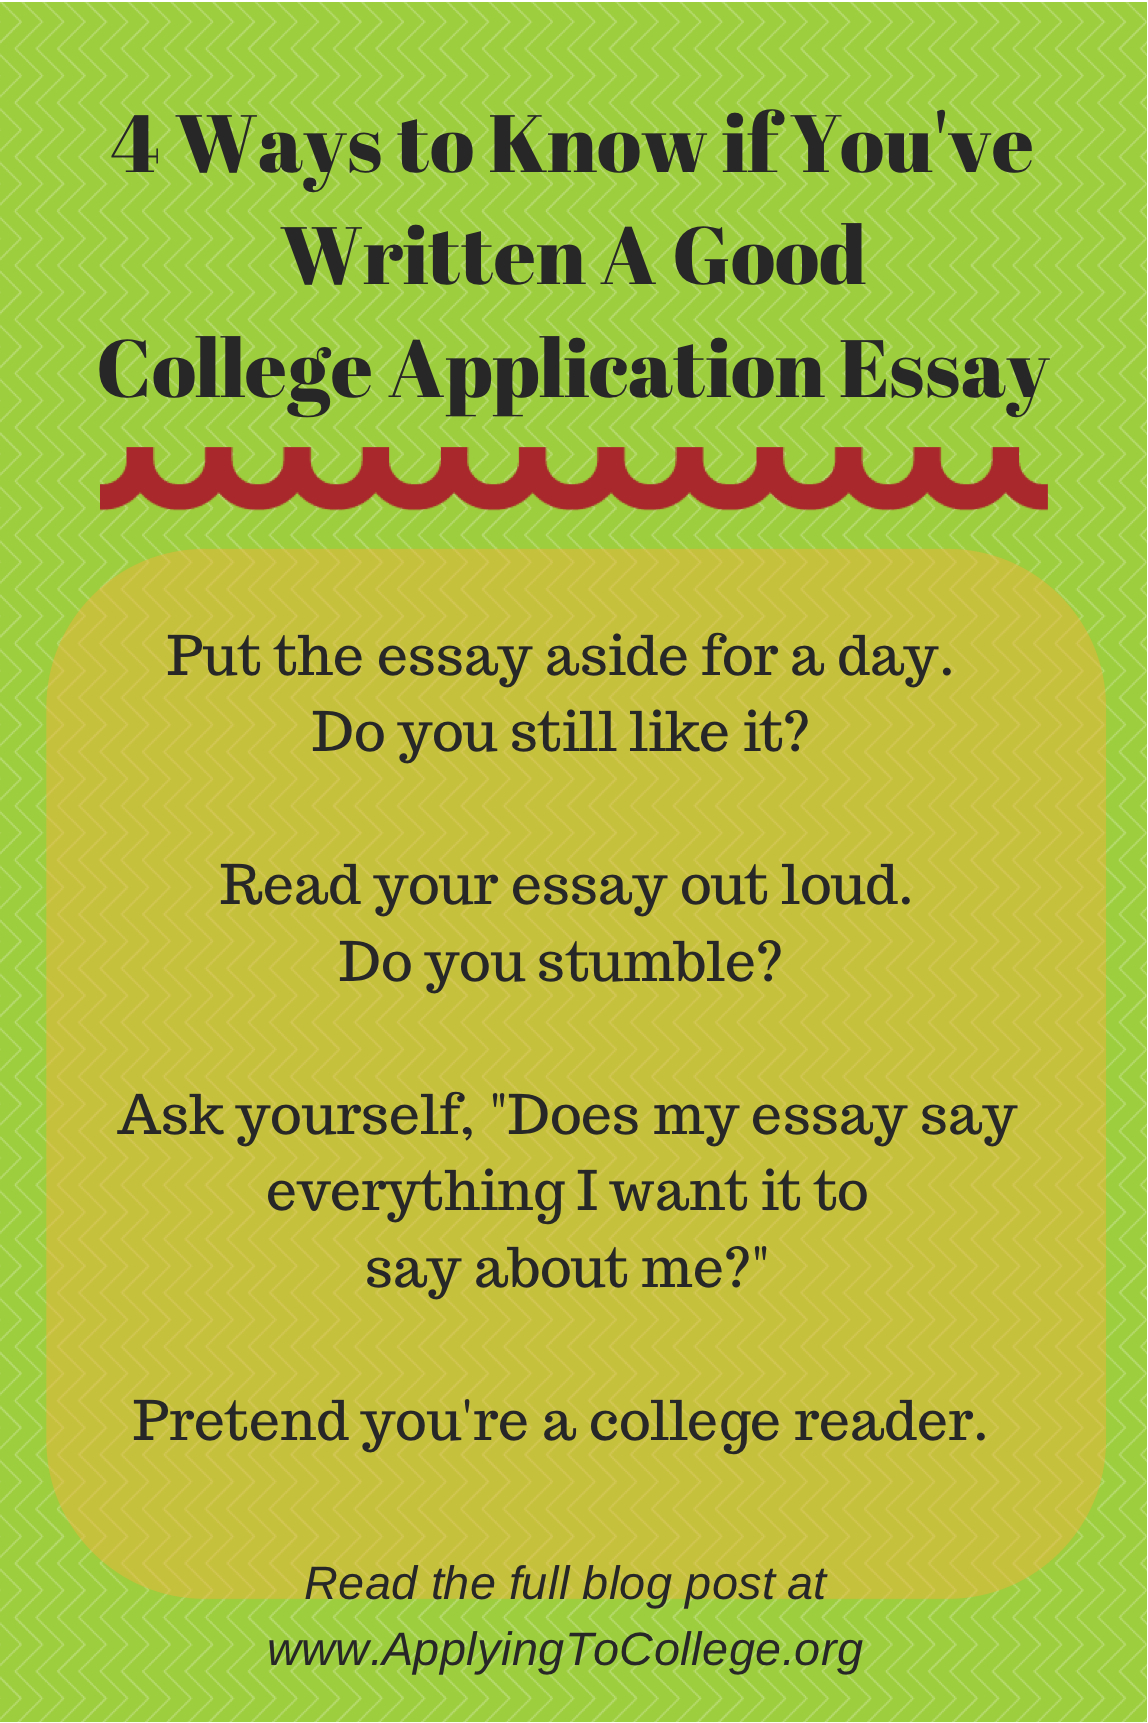 How to write college admission essay 150 word